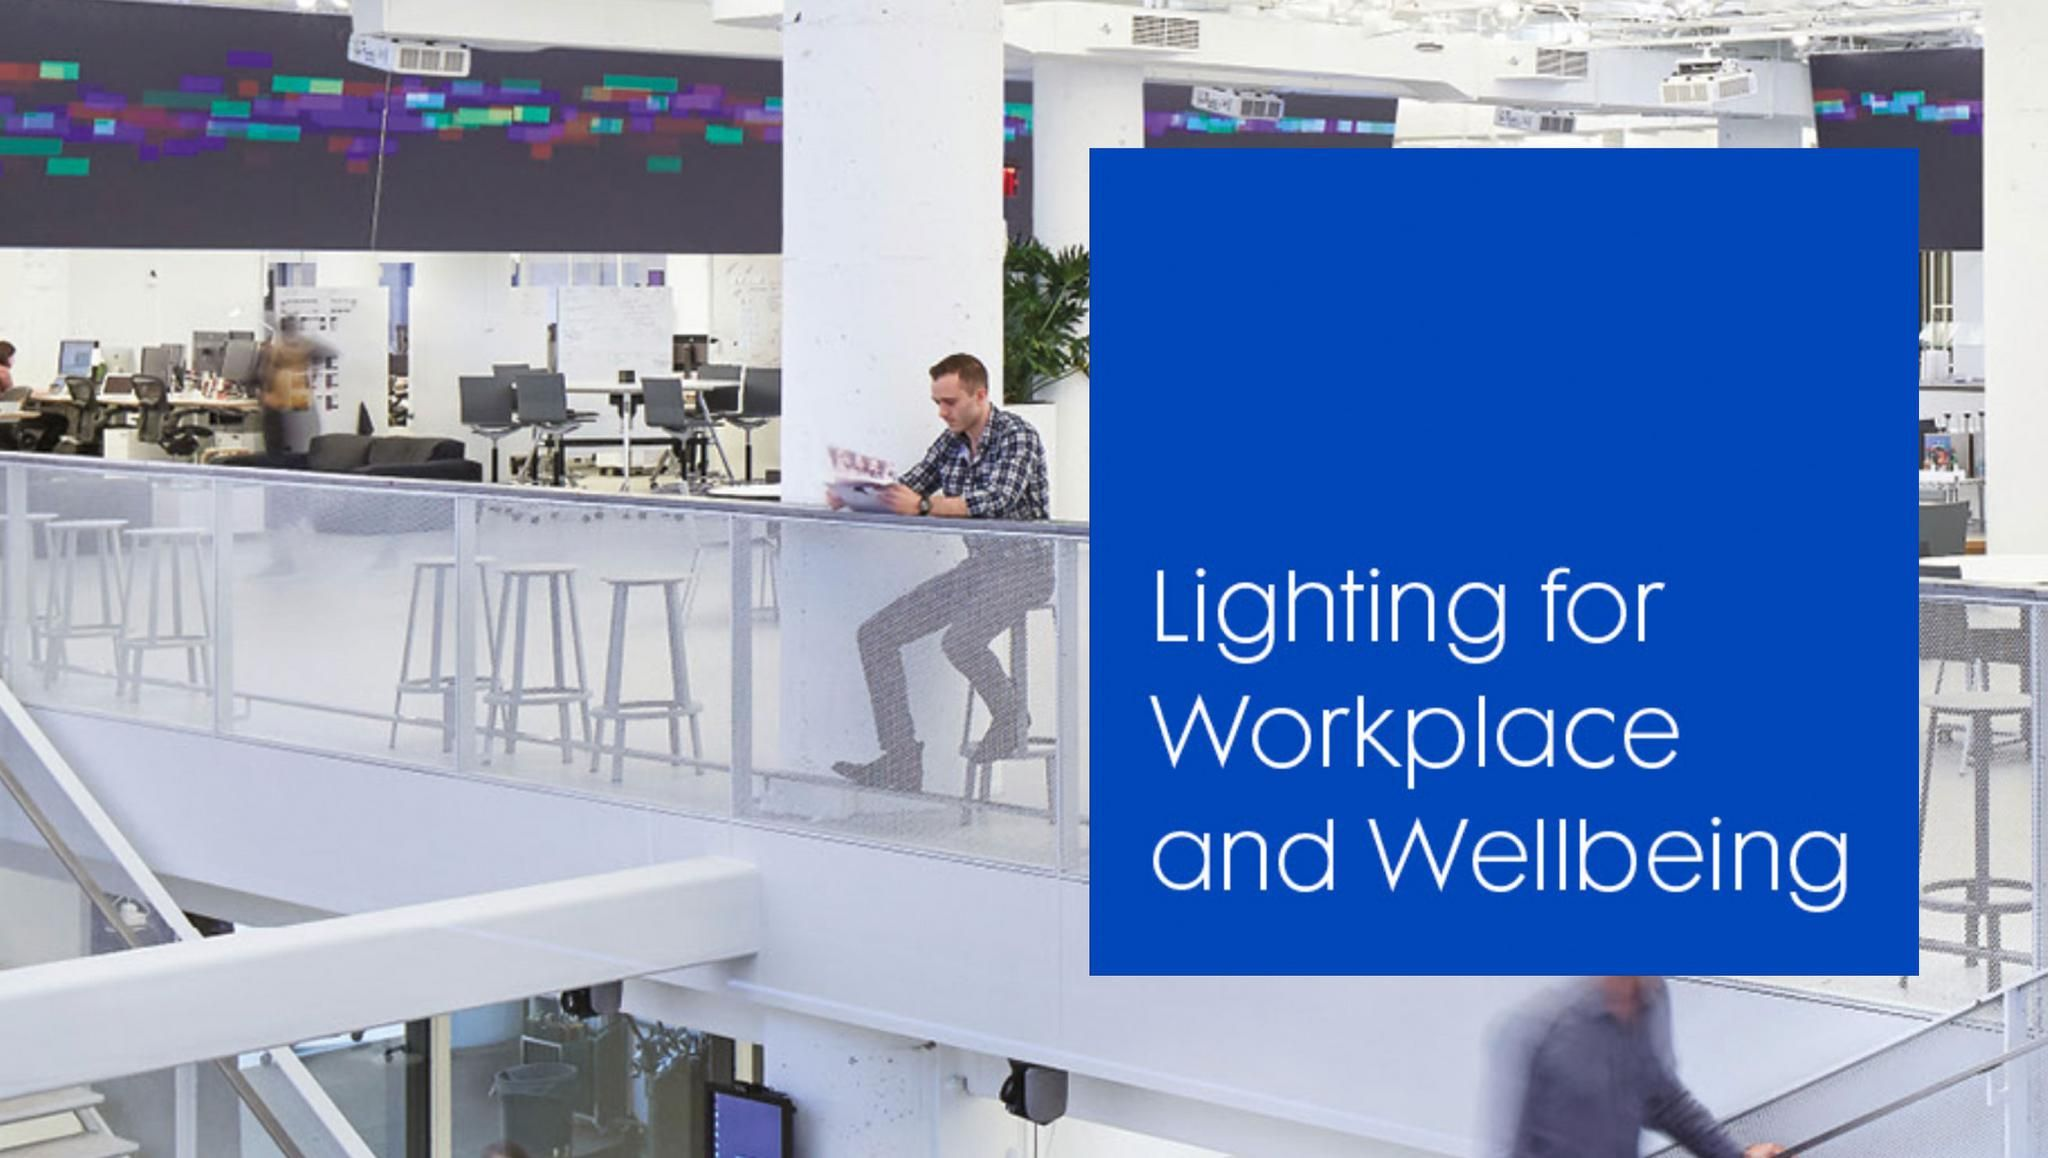 Lighting for Workplace and Wellbeing